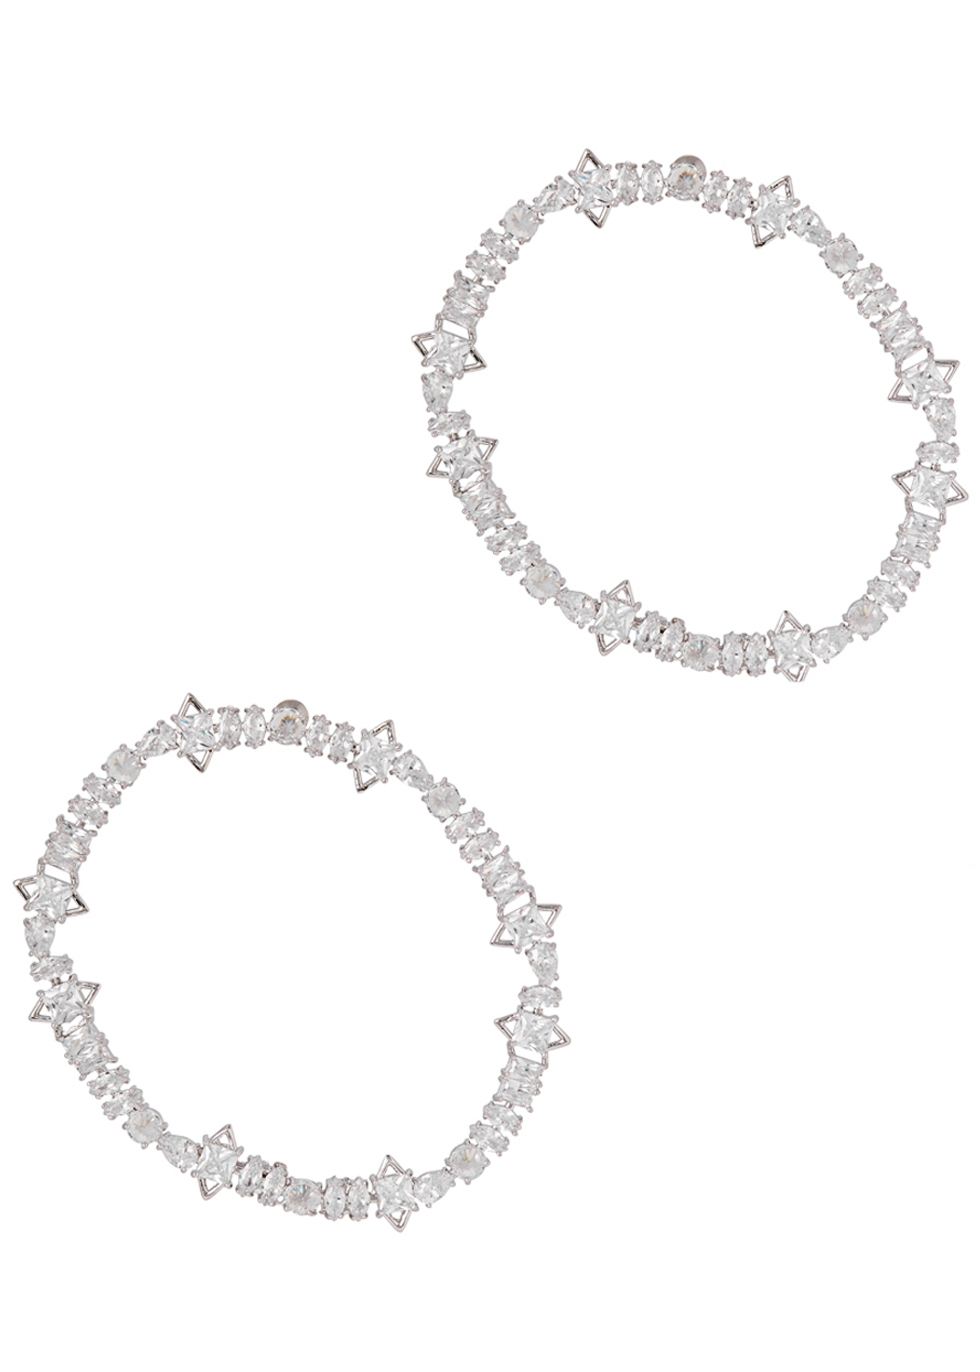 FALLON JAGGED EDGE CUBIC ZIRCONIA HOOP EARRINGS